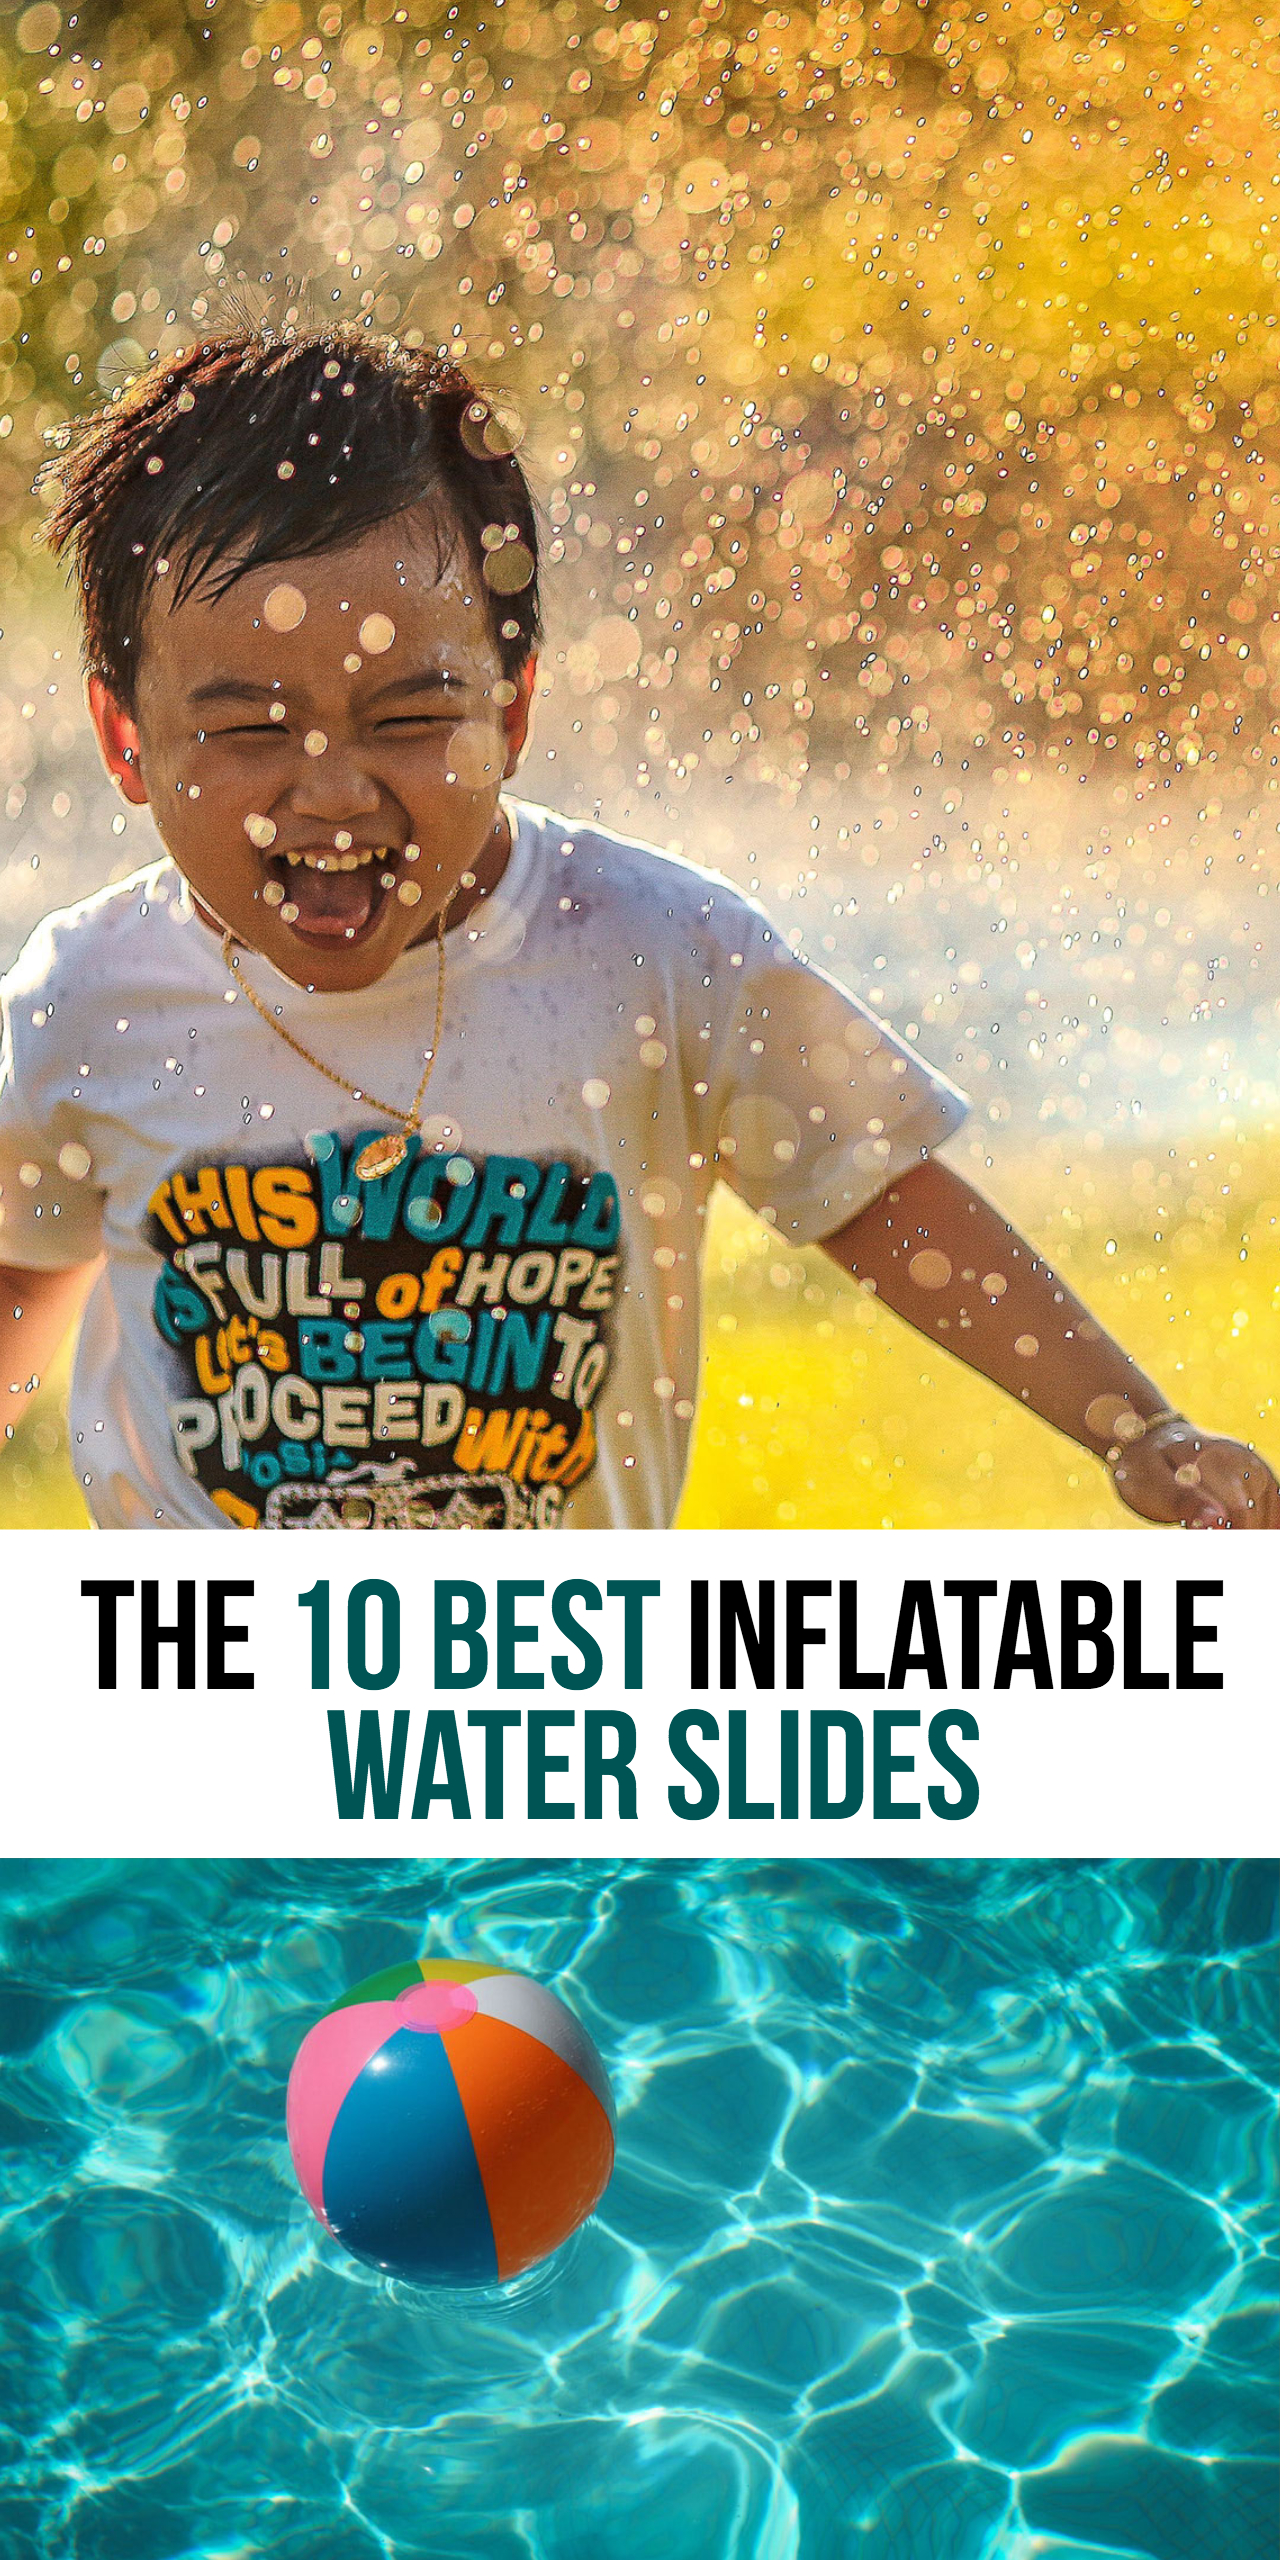 the 10 best inflatable water slides for kids | inflatable water slide party | inflatable water slides for sale | jumpers #backyard #summer